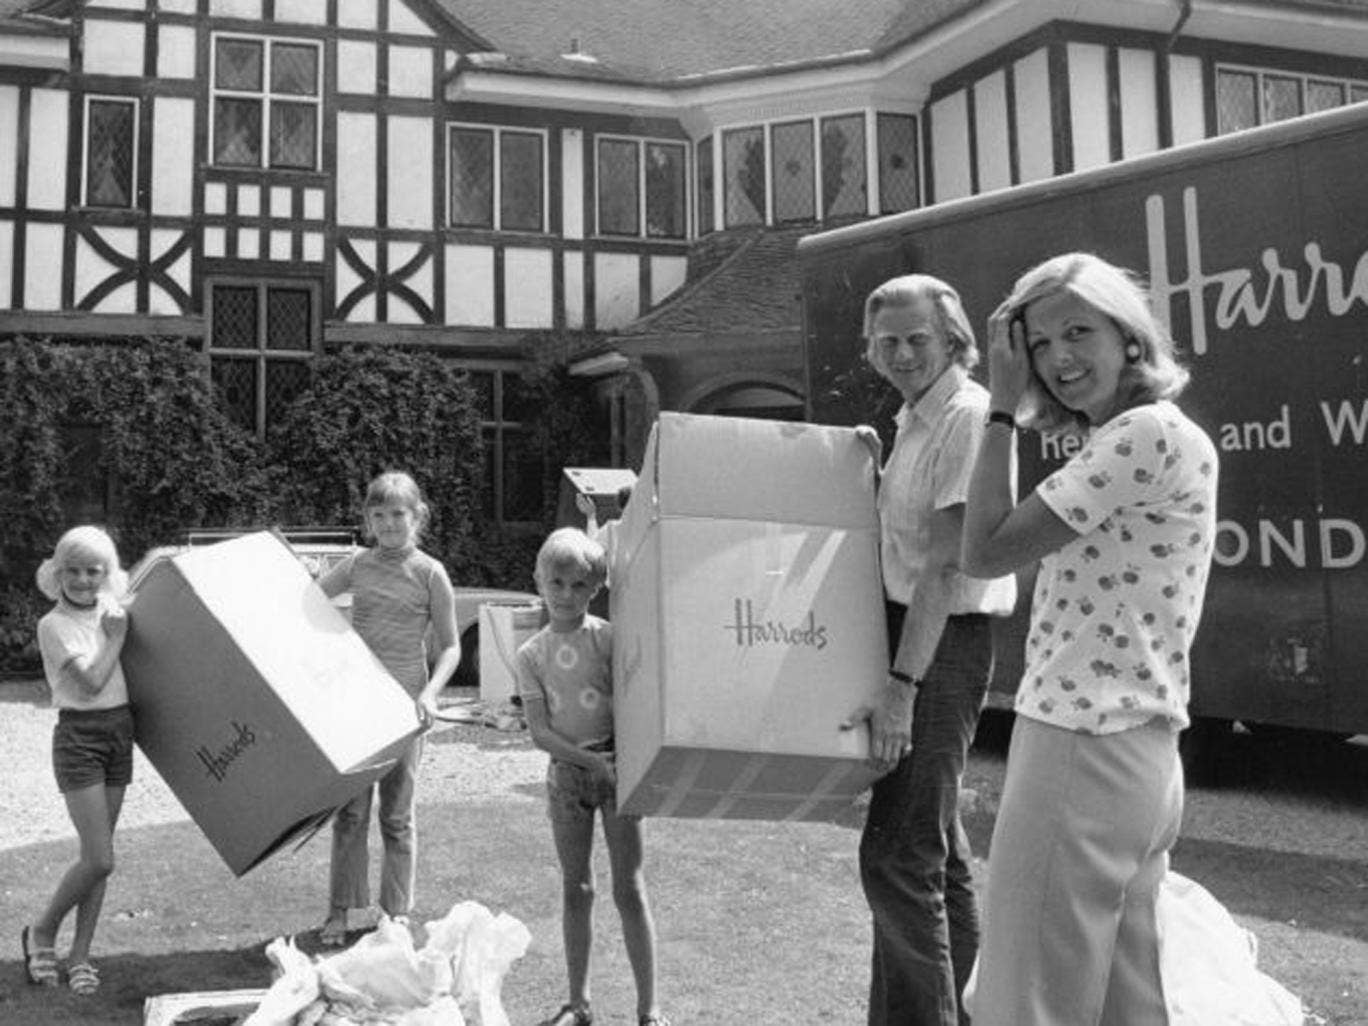 When the Heseltine family were moving home in 1973, people could look forward to decades of house price rises